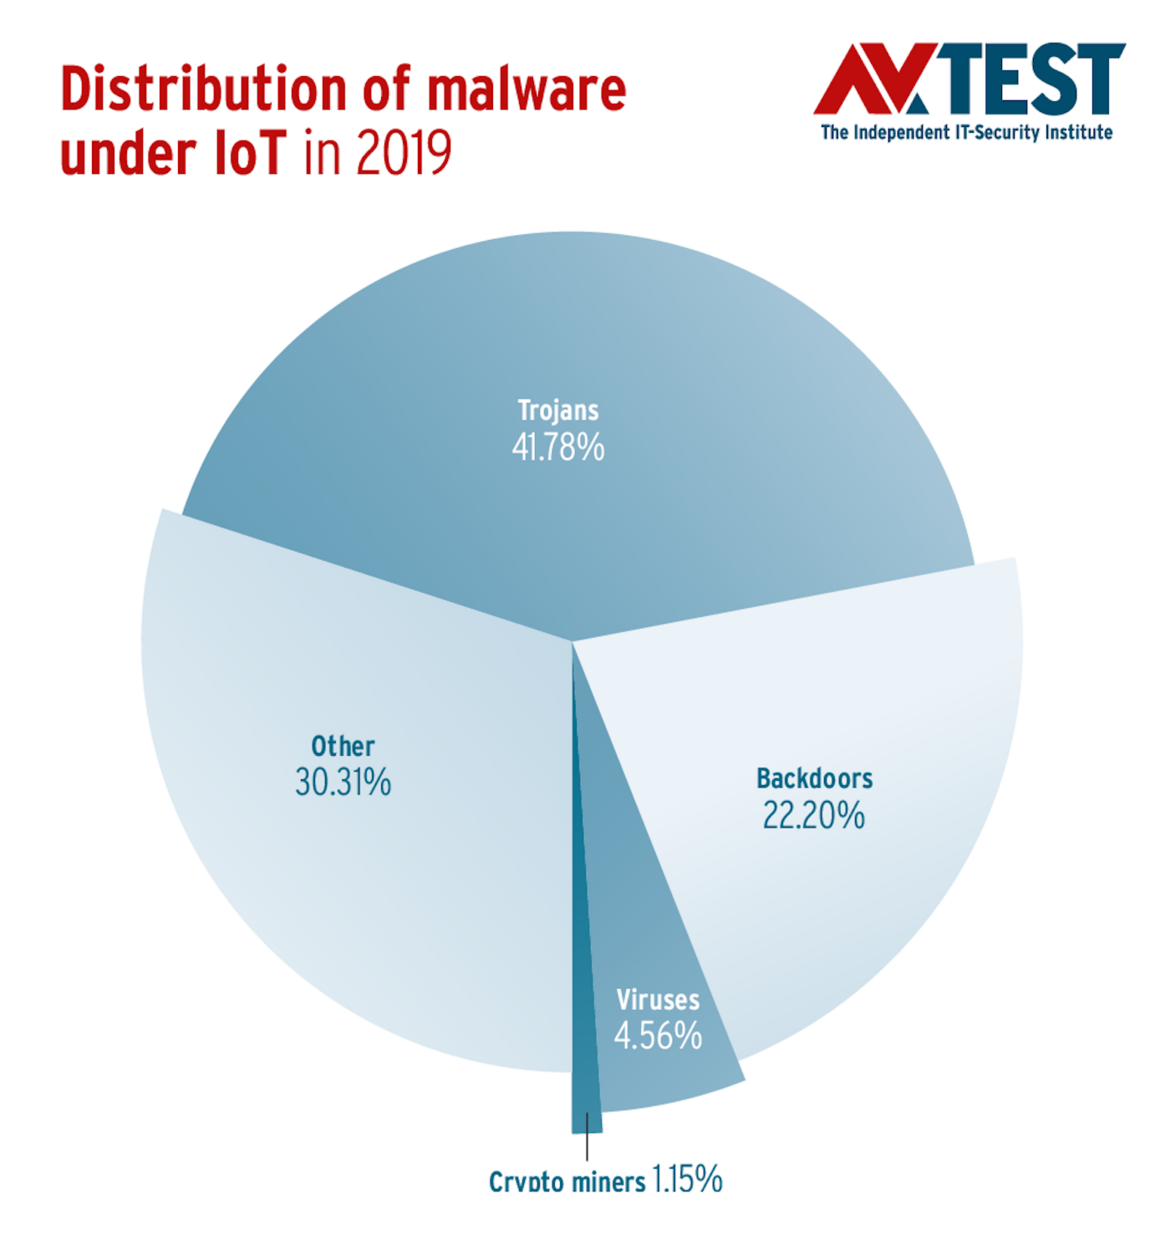 Distribution of malware under IoT 2019